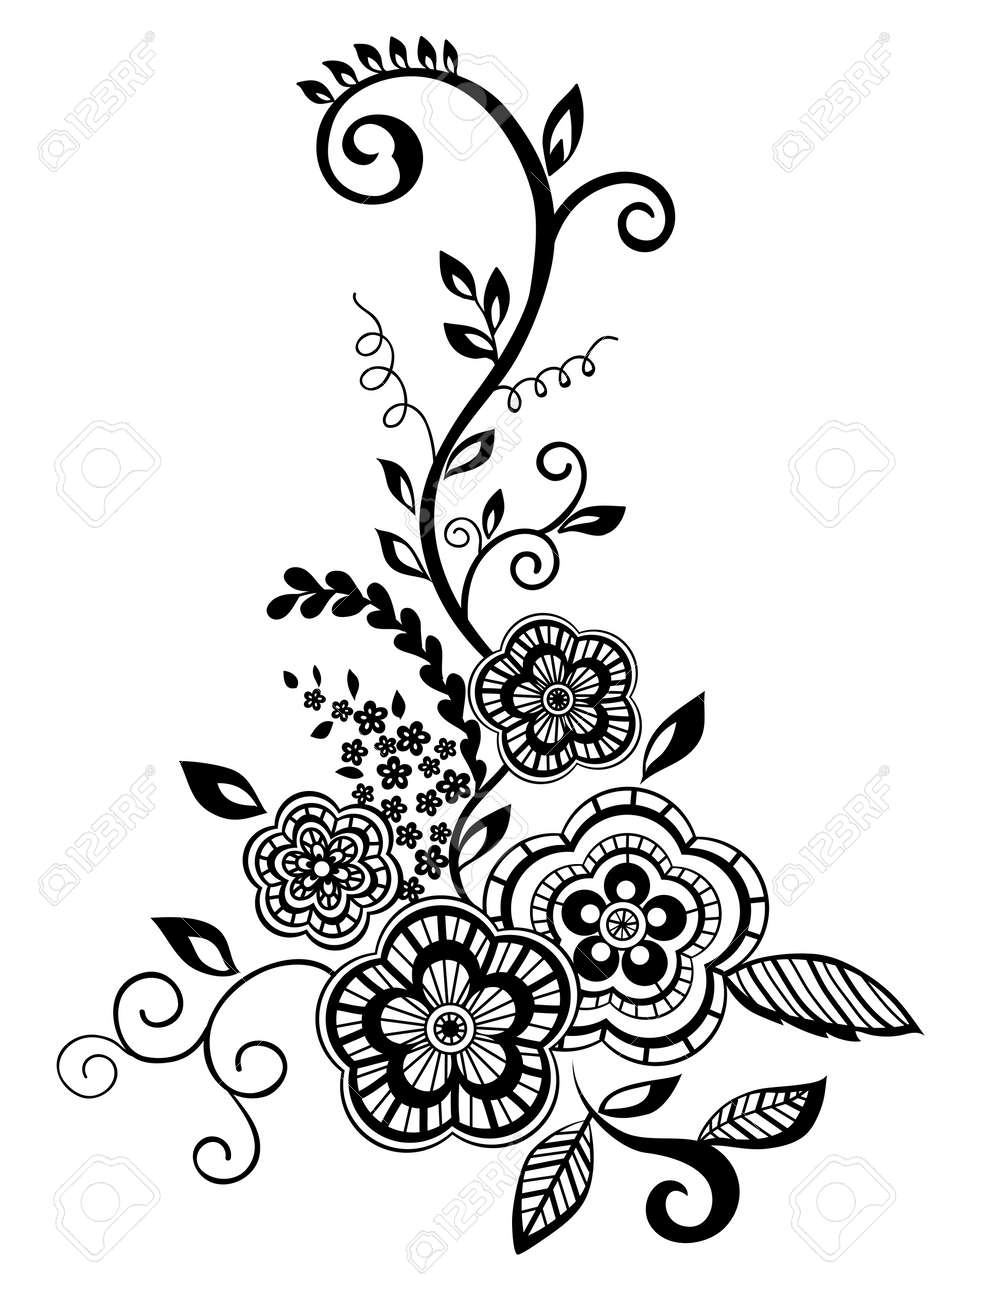 100 black and white flower art flower vase clipart black black and white flower art beautiful floral element black and white flowers and leaves dhlflorist Image collections